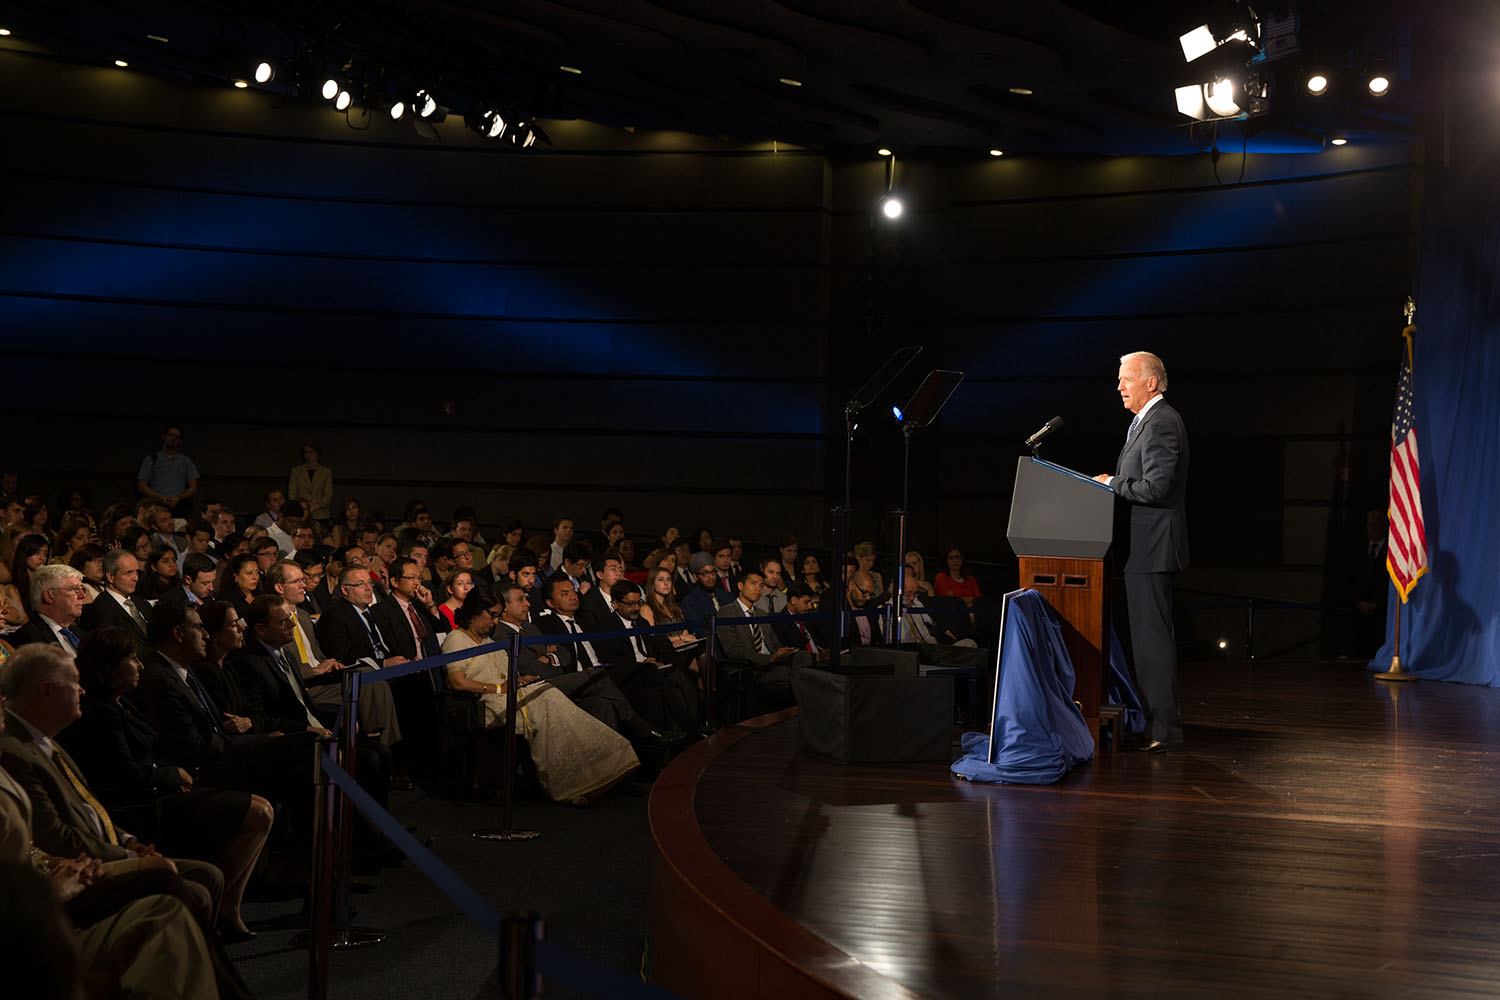 Vice President Joe Biden delivers remarks on U.S. policy towards the Asia-Pacific region